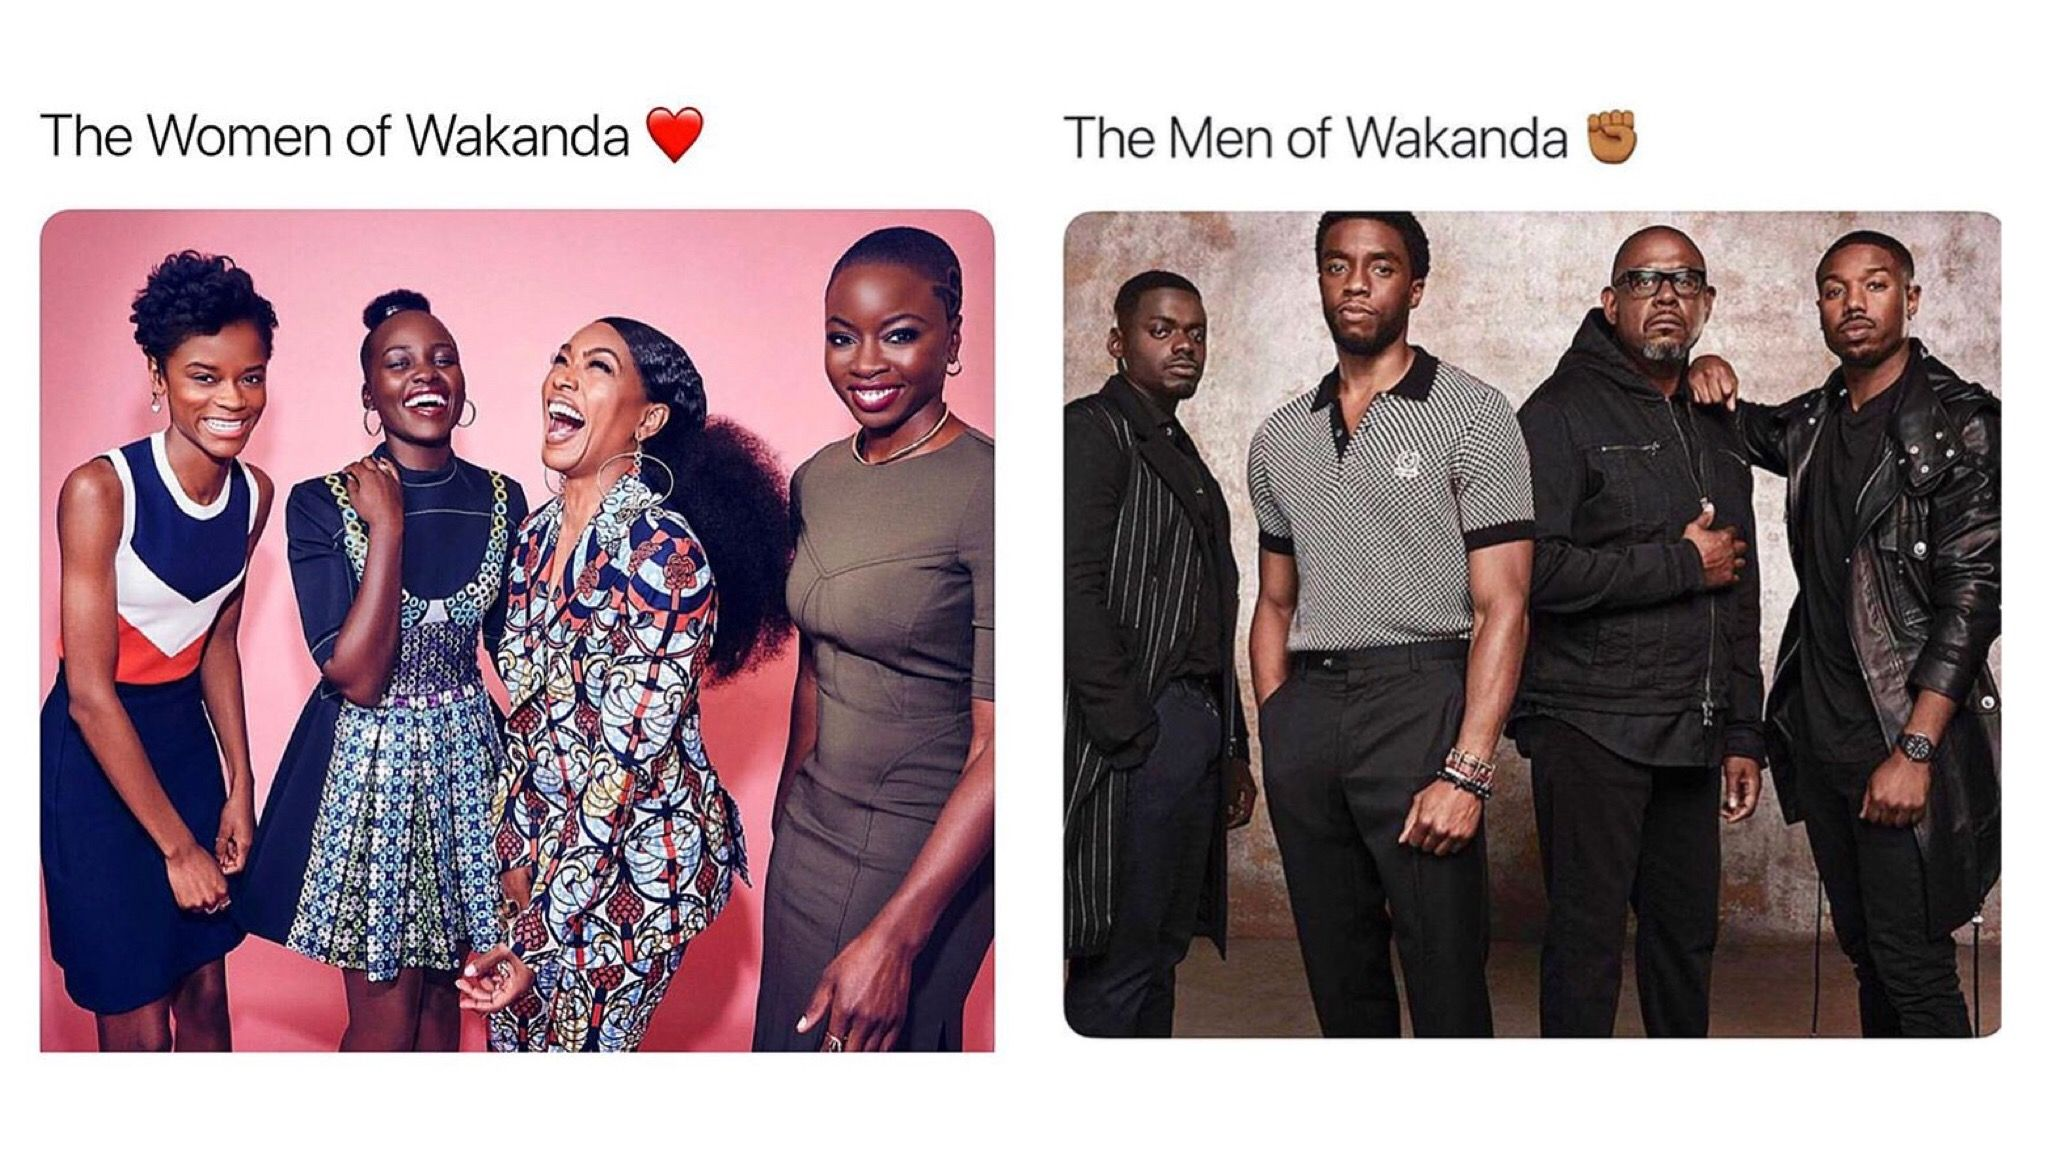 The men and women of Wakanda